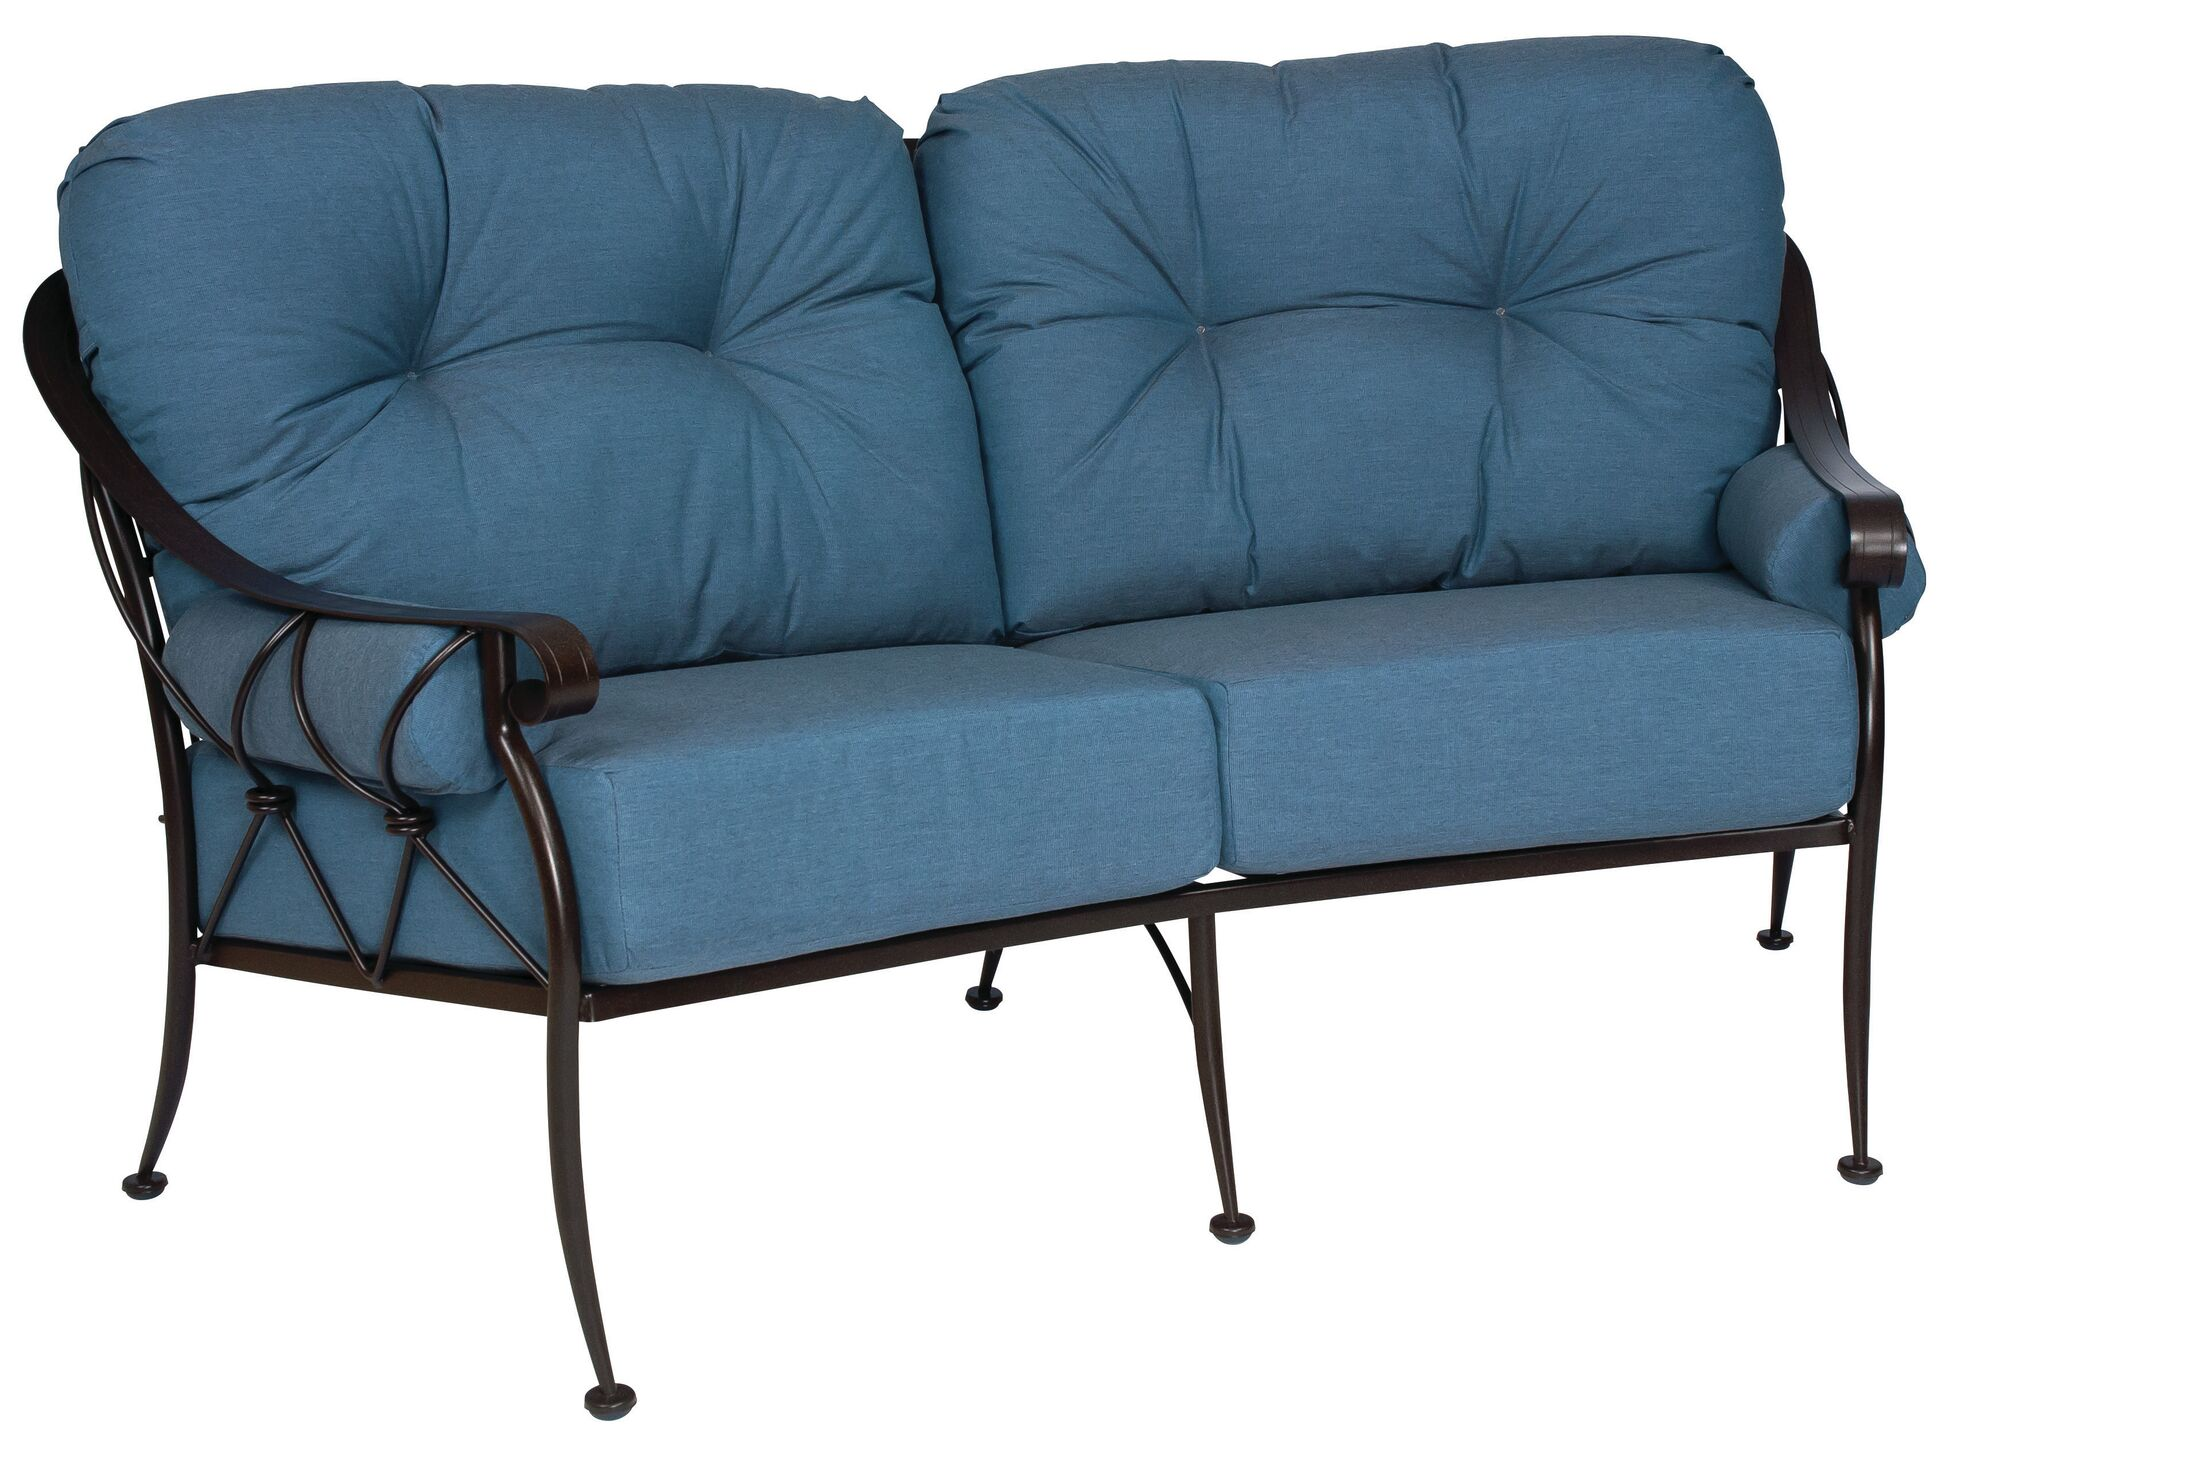 Derby Crescent Loveseat with Cushions Color: Canvas Parrot